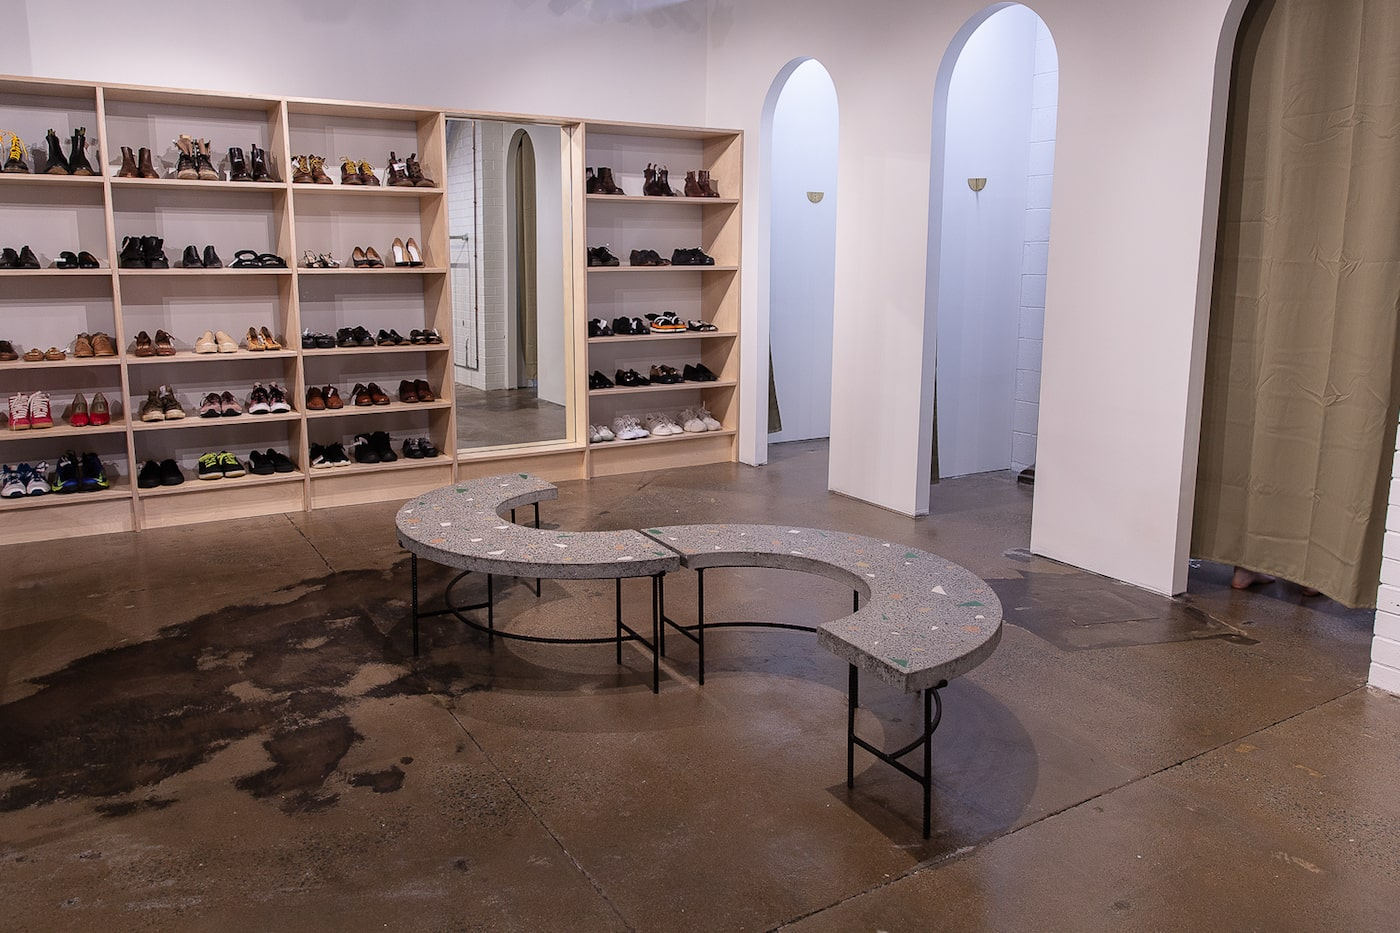 Concrete seat in store seating